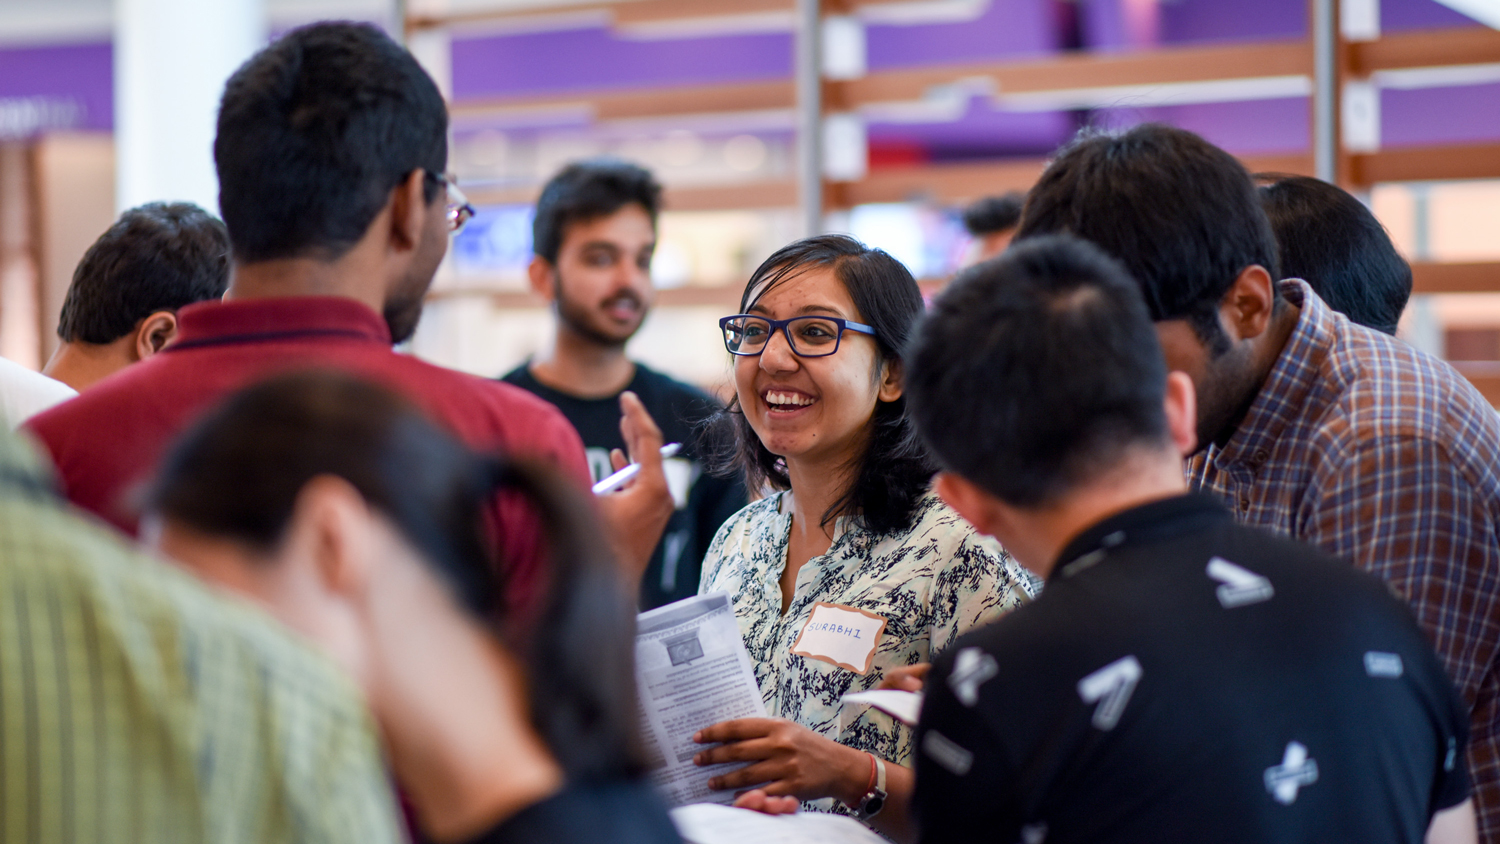 Students gather at international student orientation